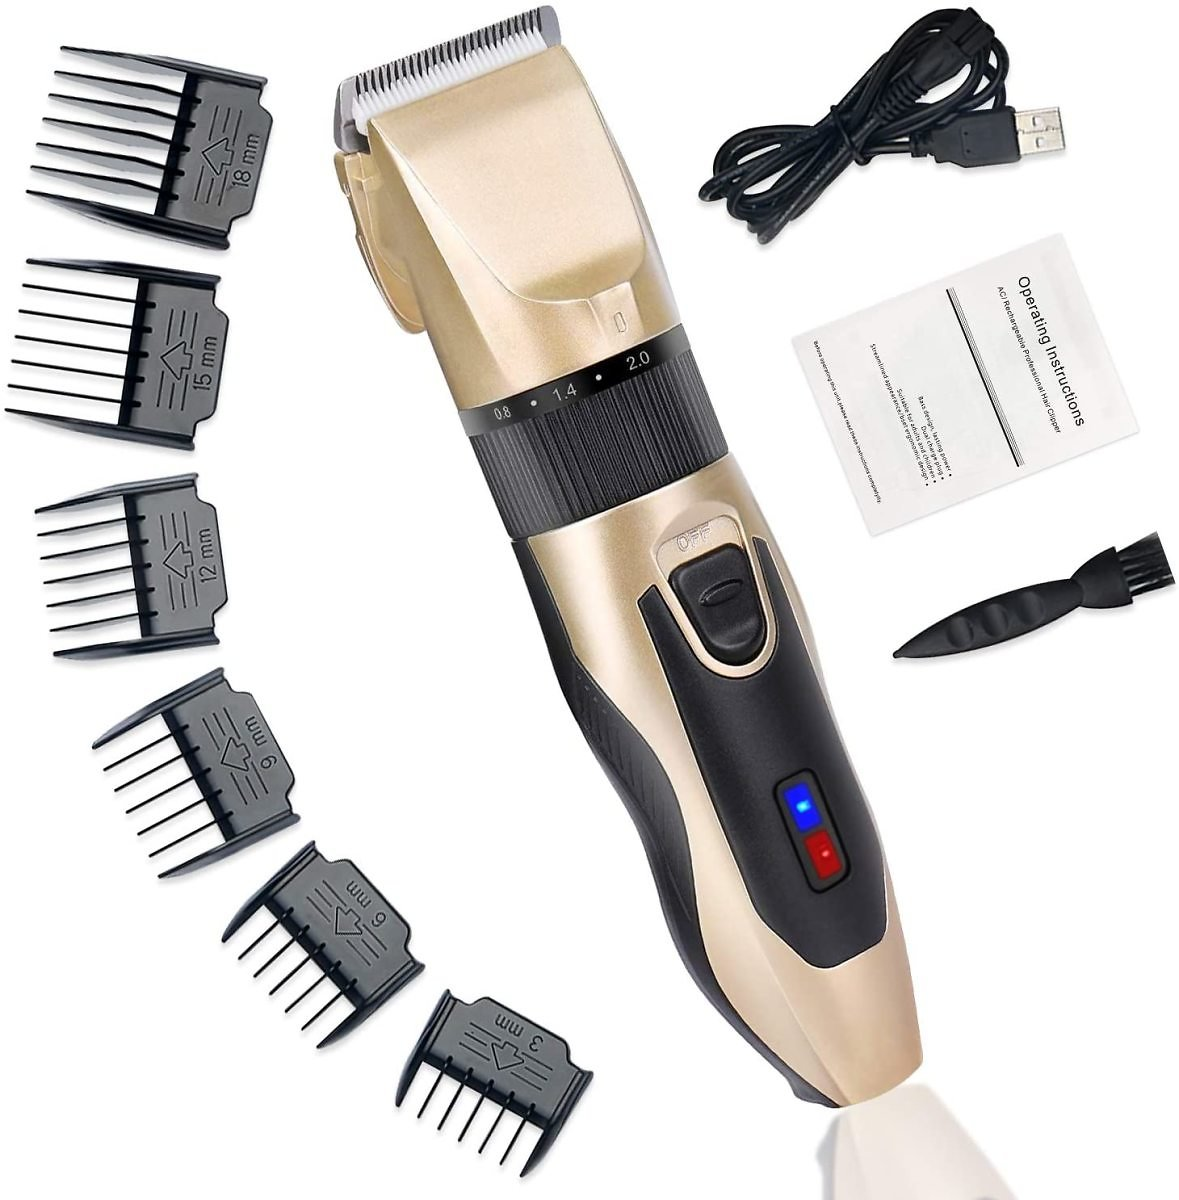 TOOVREN Hair Clippers for Men Professional Hair Trimmer Cutting Cordless Rechargeable Electric Barber Clipper Kit